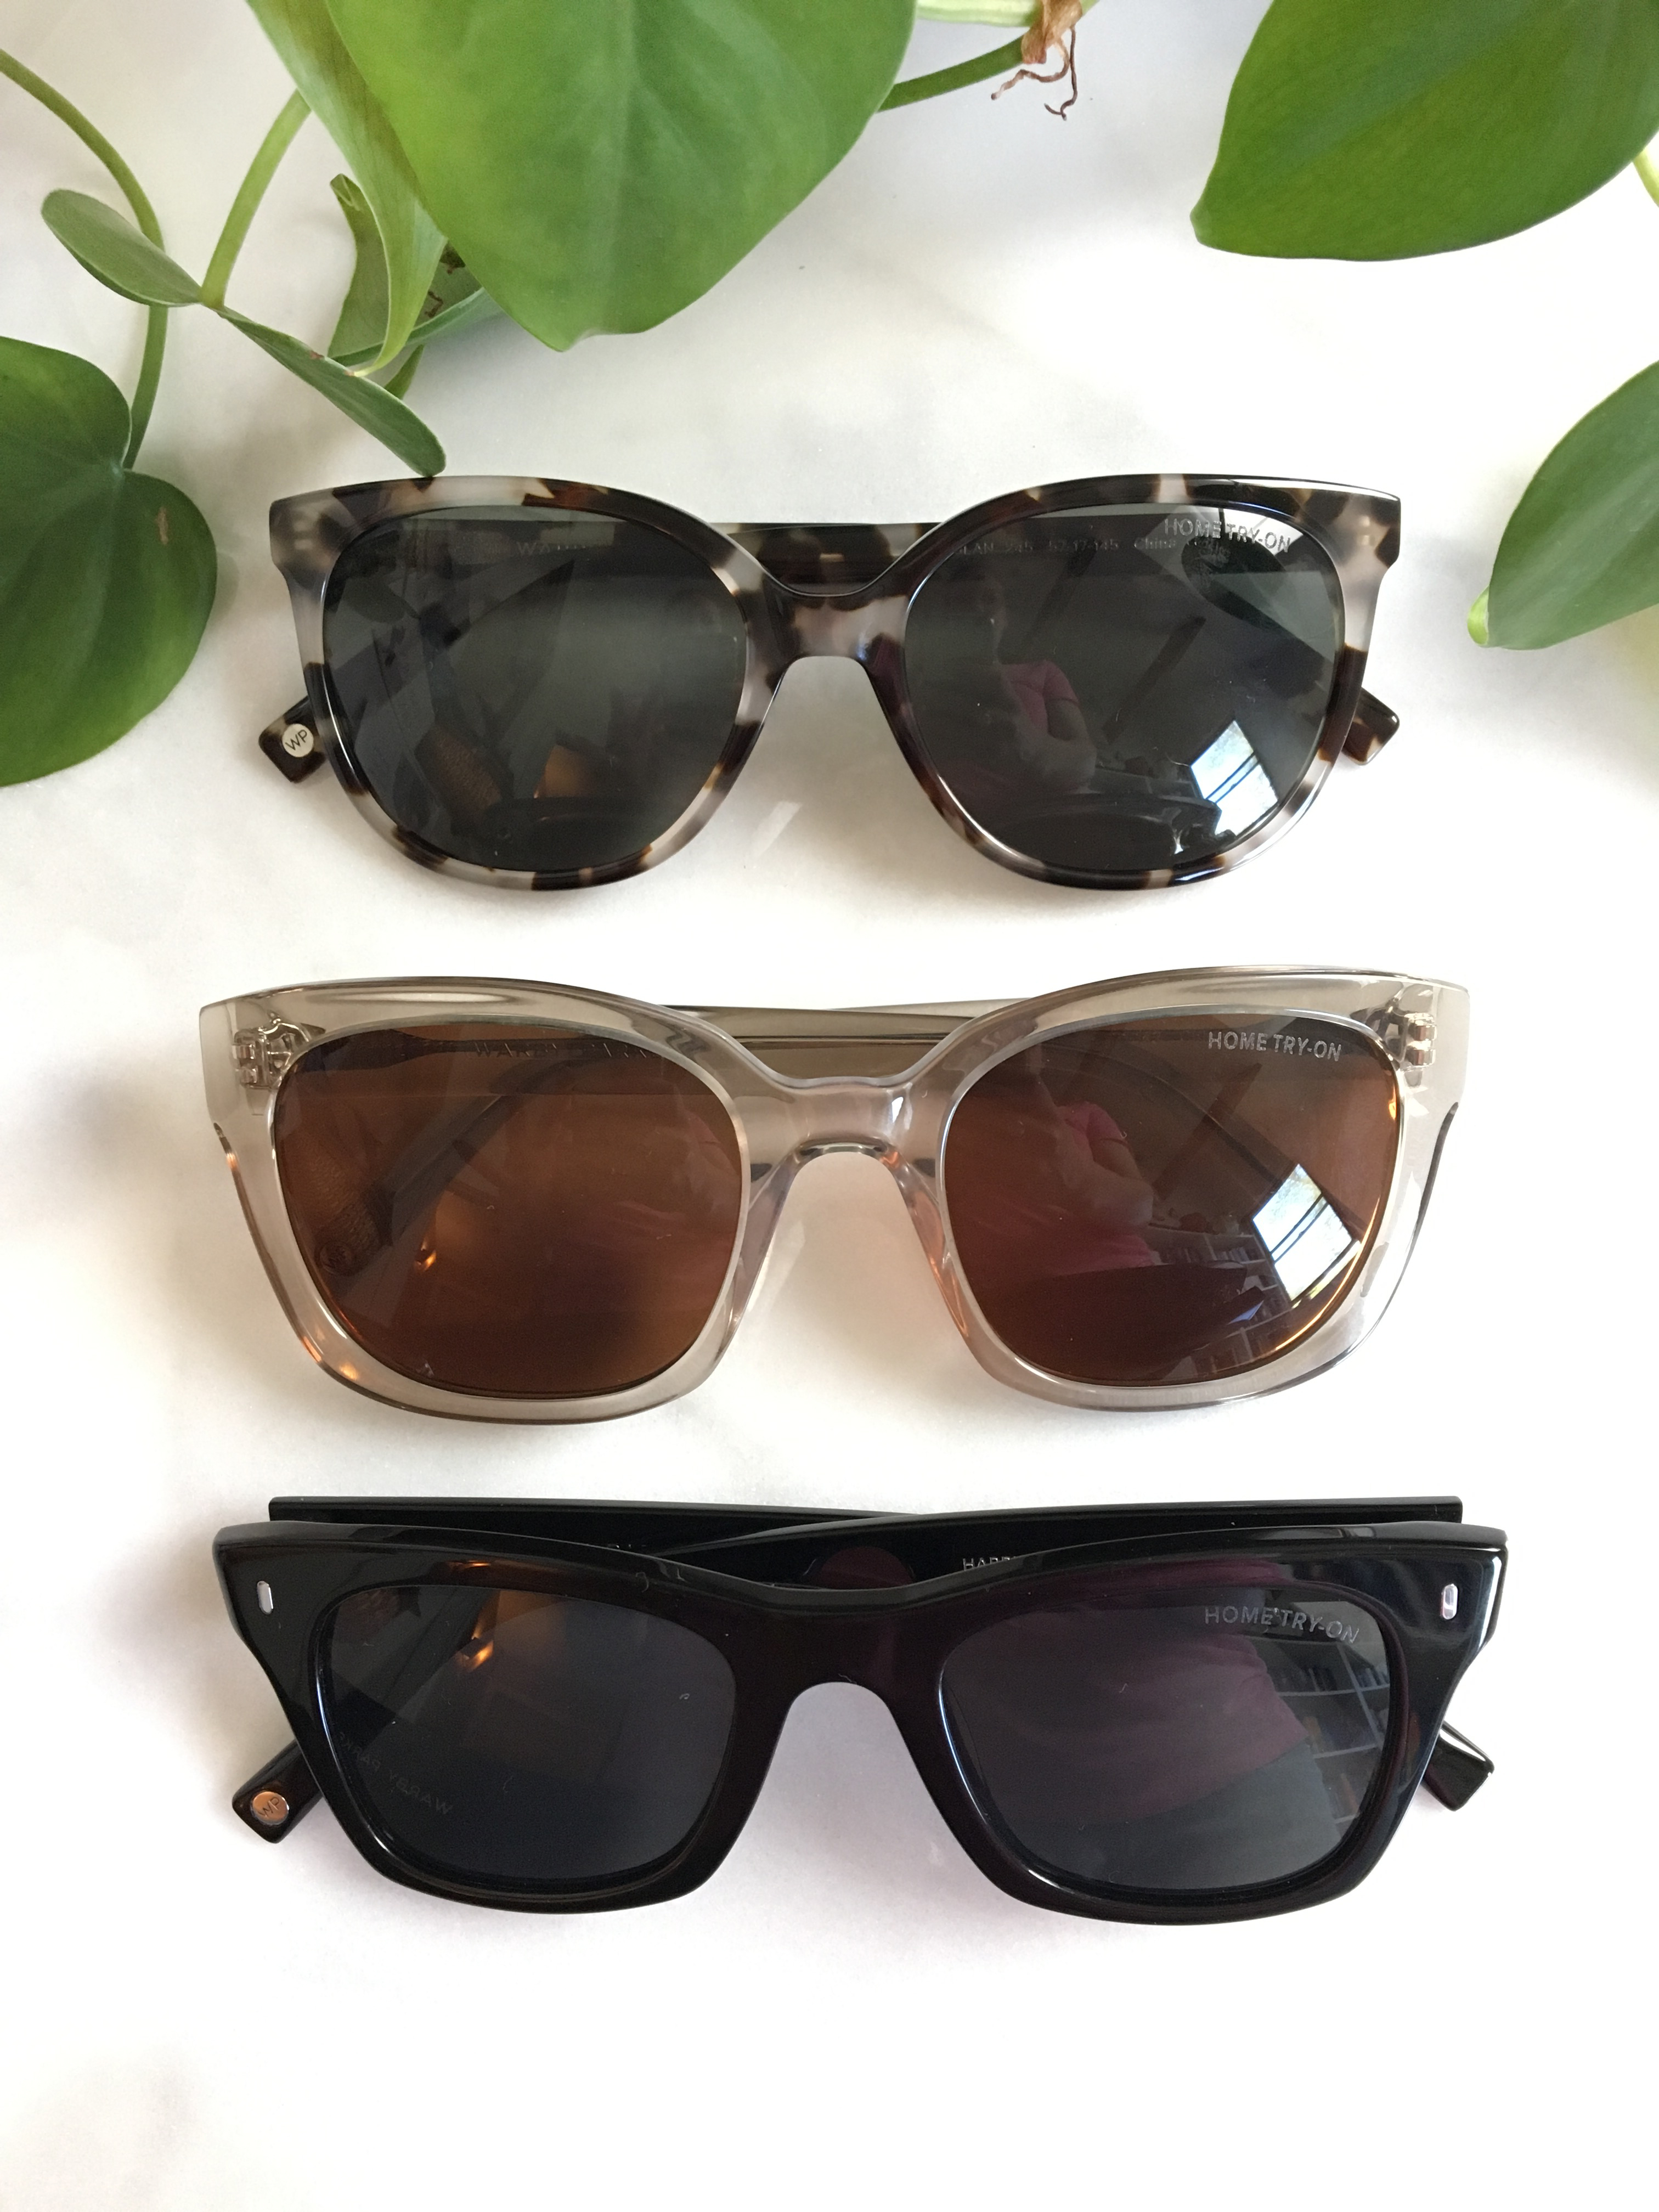 Warby Parker Home Try-On Sunglasses